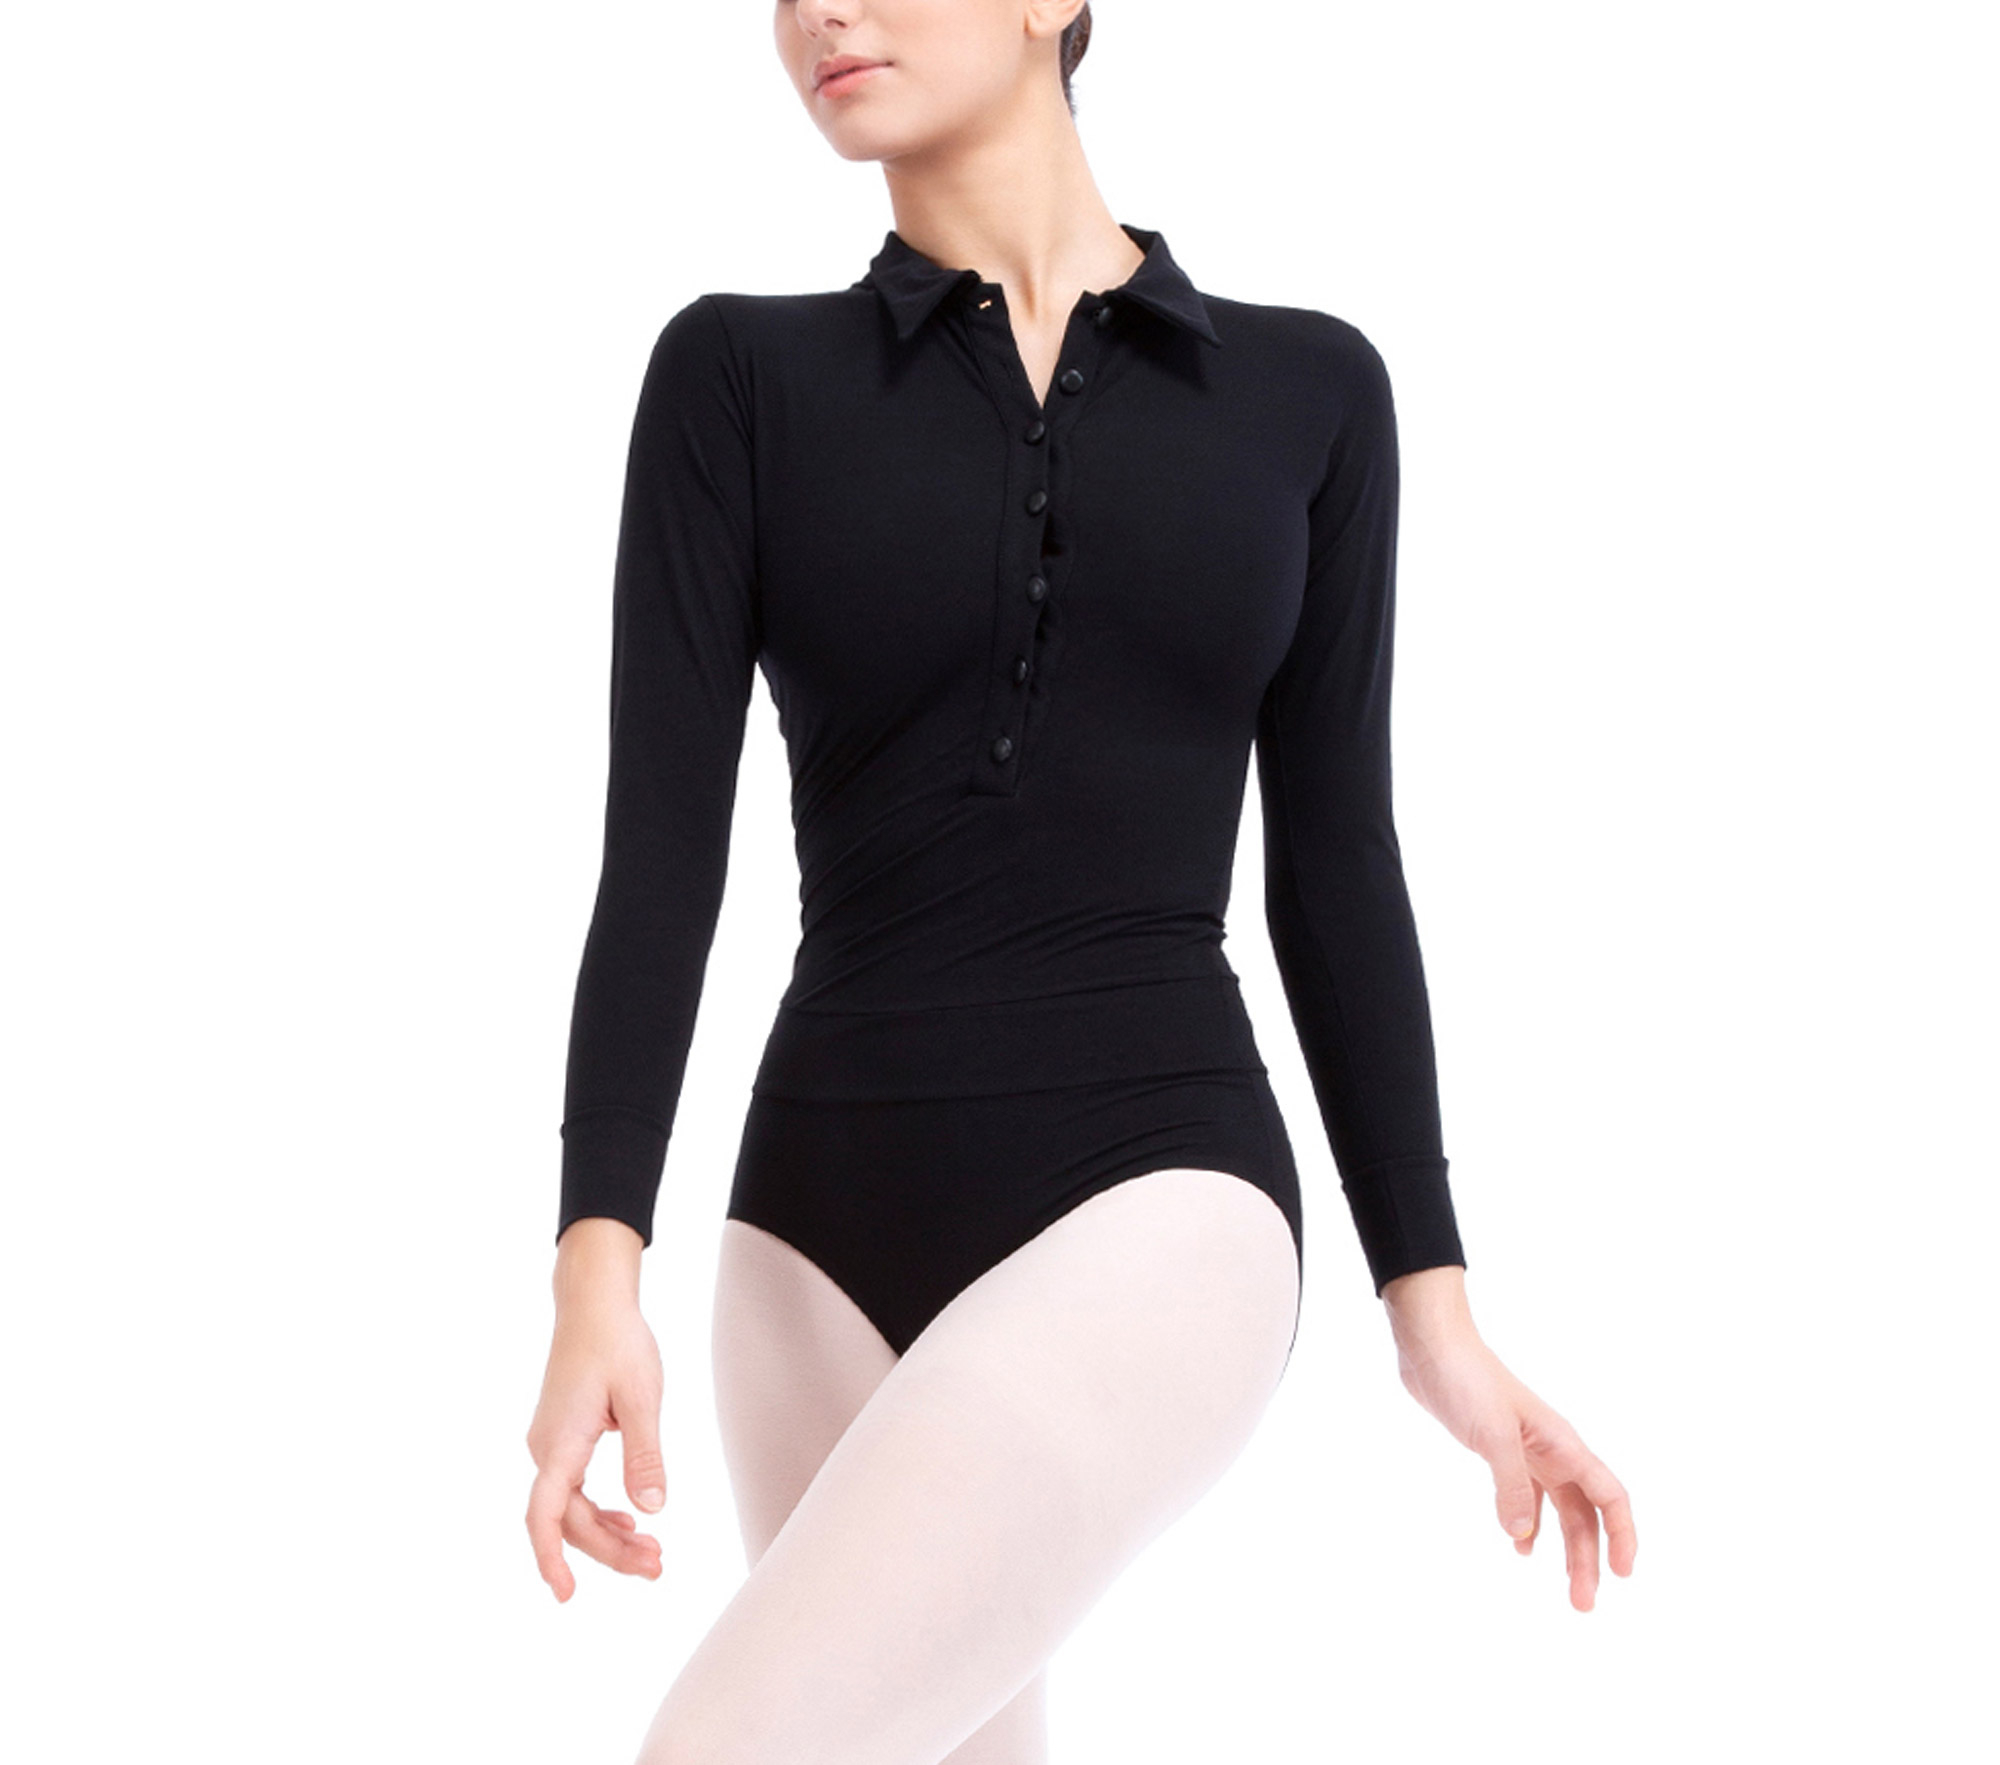 Collar shirt leotard